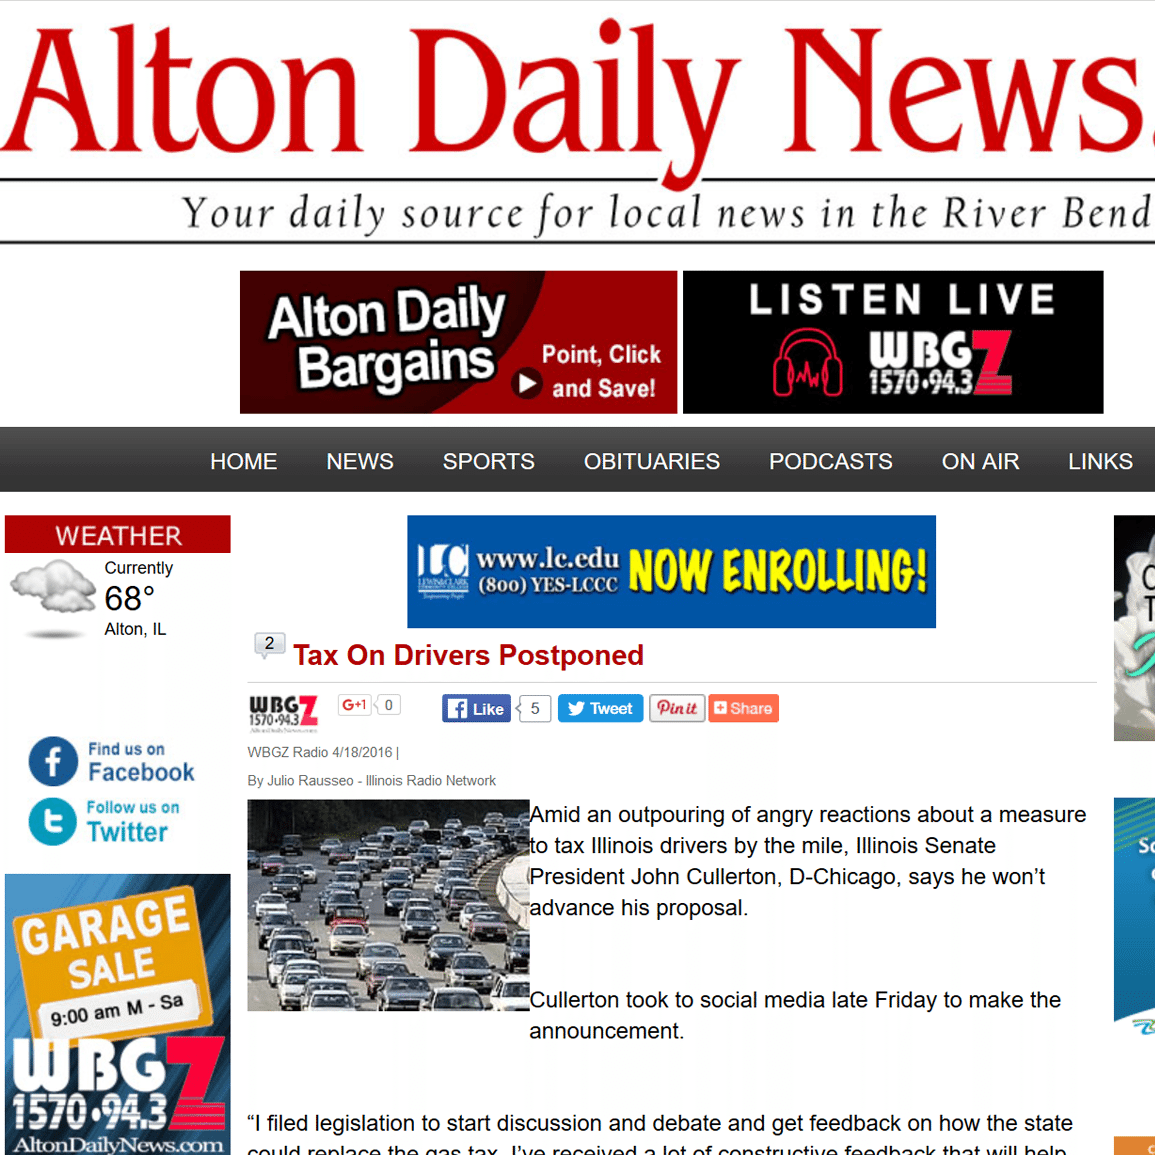 Alton Daily News|Tax On Drivers Postponed